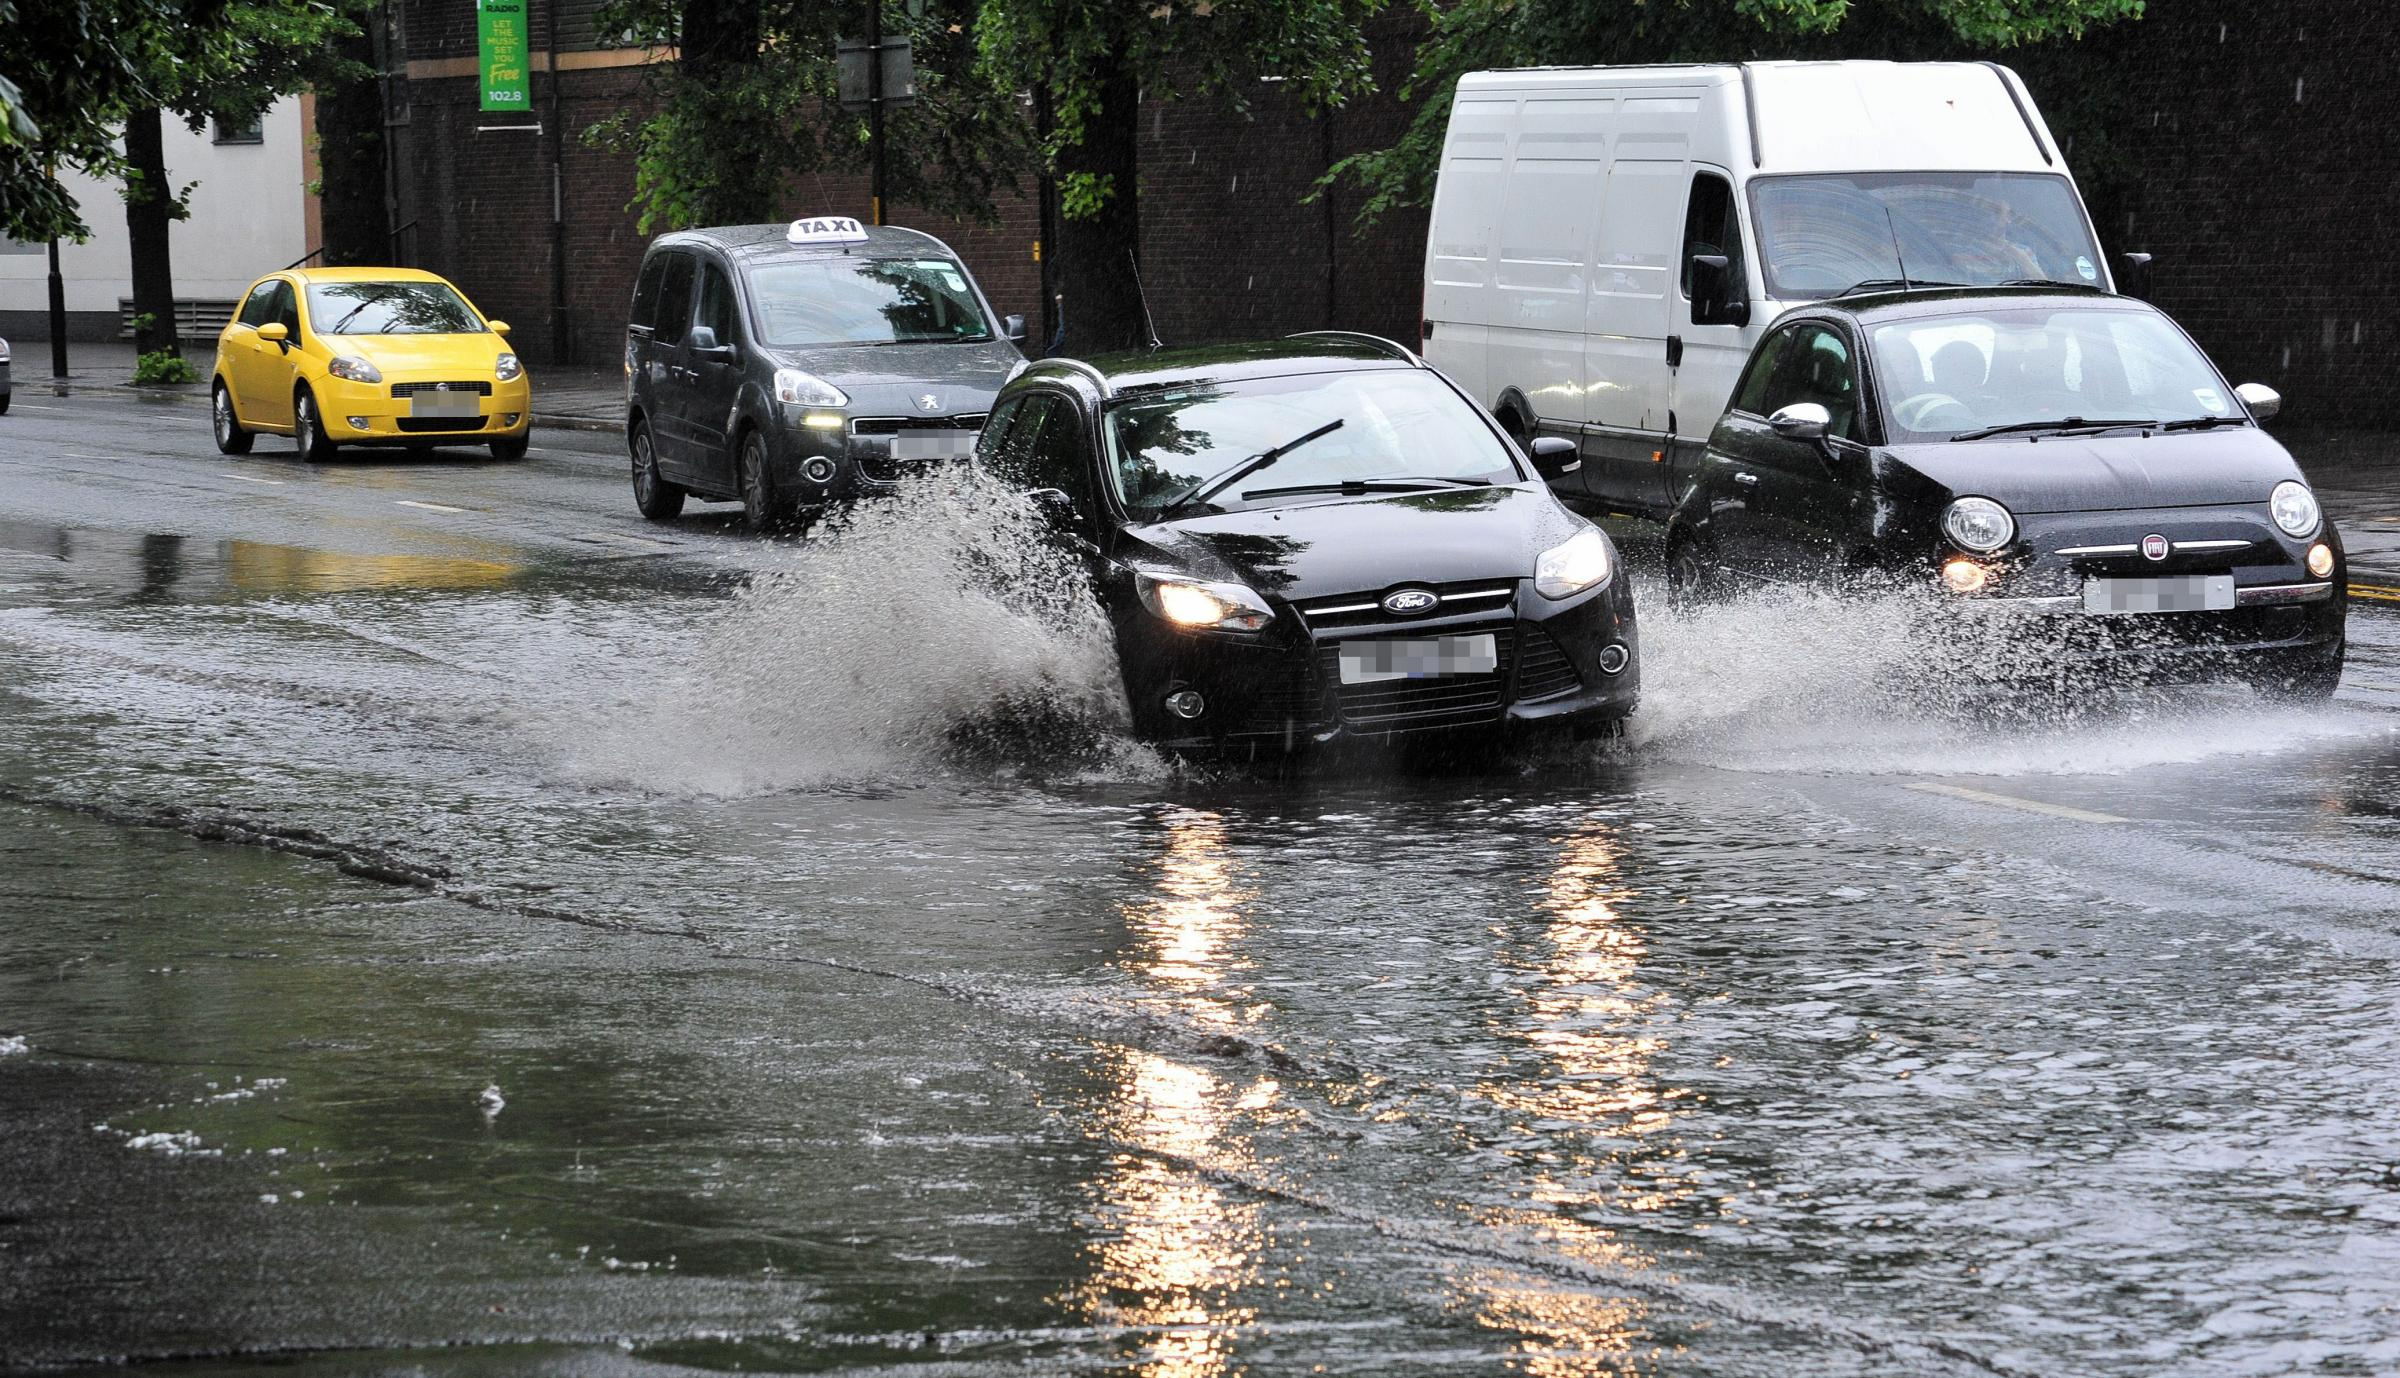 WEATHER WARNING: Torrential downpours and possible localised flooding expected